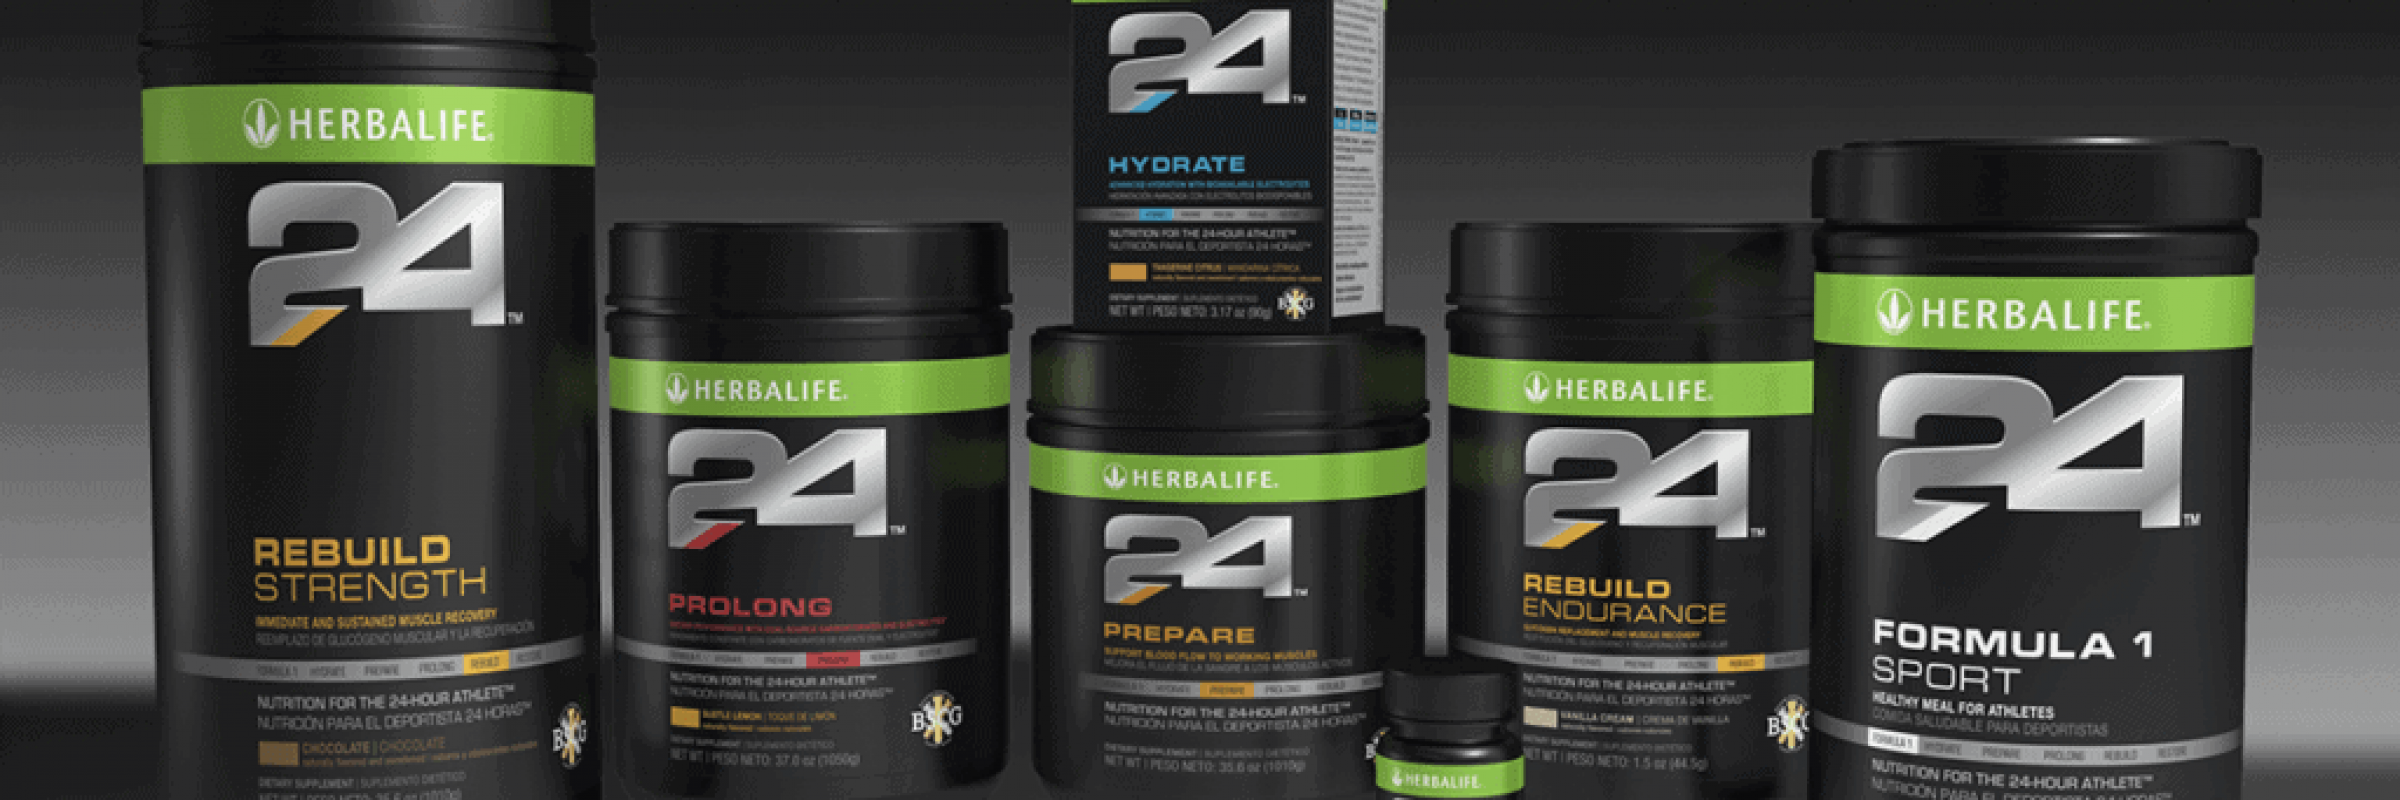 how to sell Herbalife